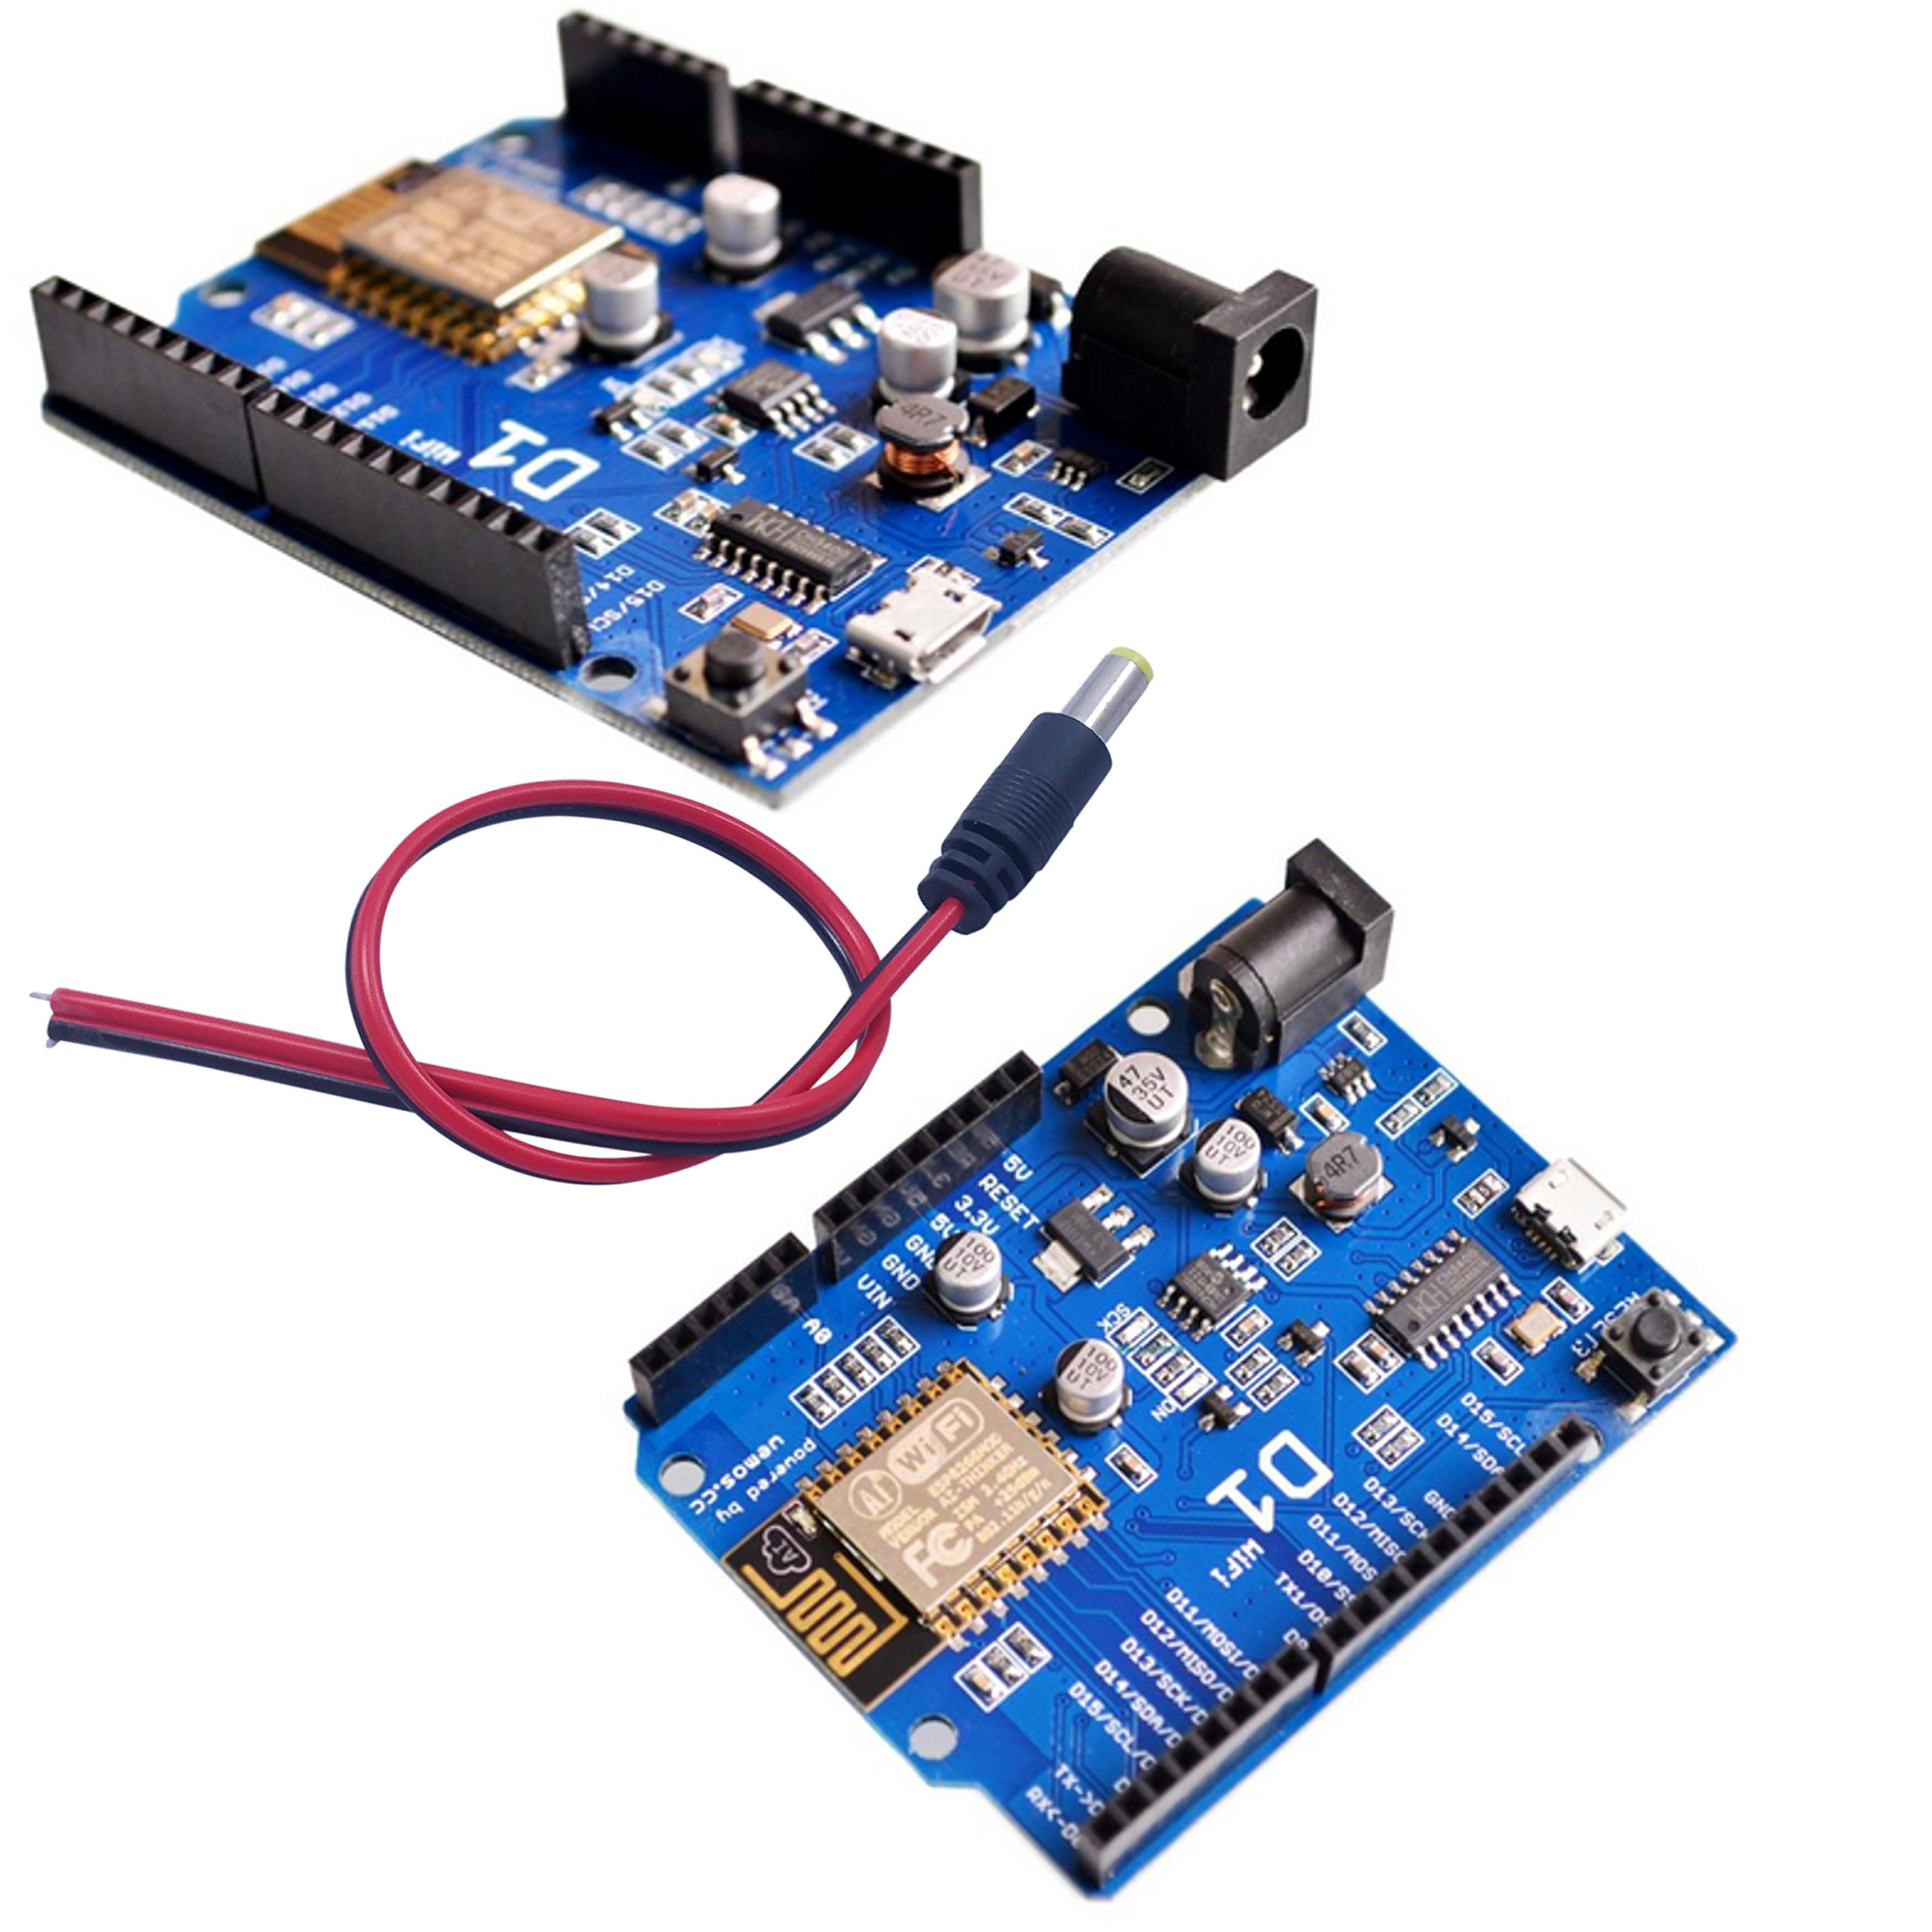 [initeq] 2 Pack D1 WIFI Development Board ESP-12 ESP8266 Arduino UNO Size, with Power Connector Pigtail